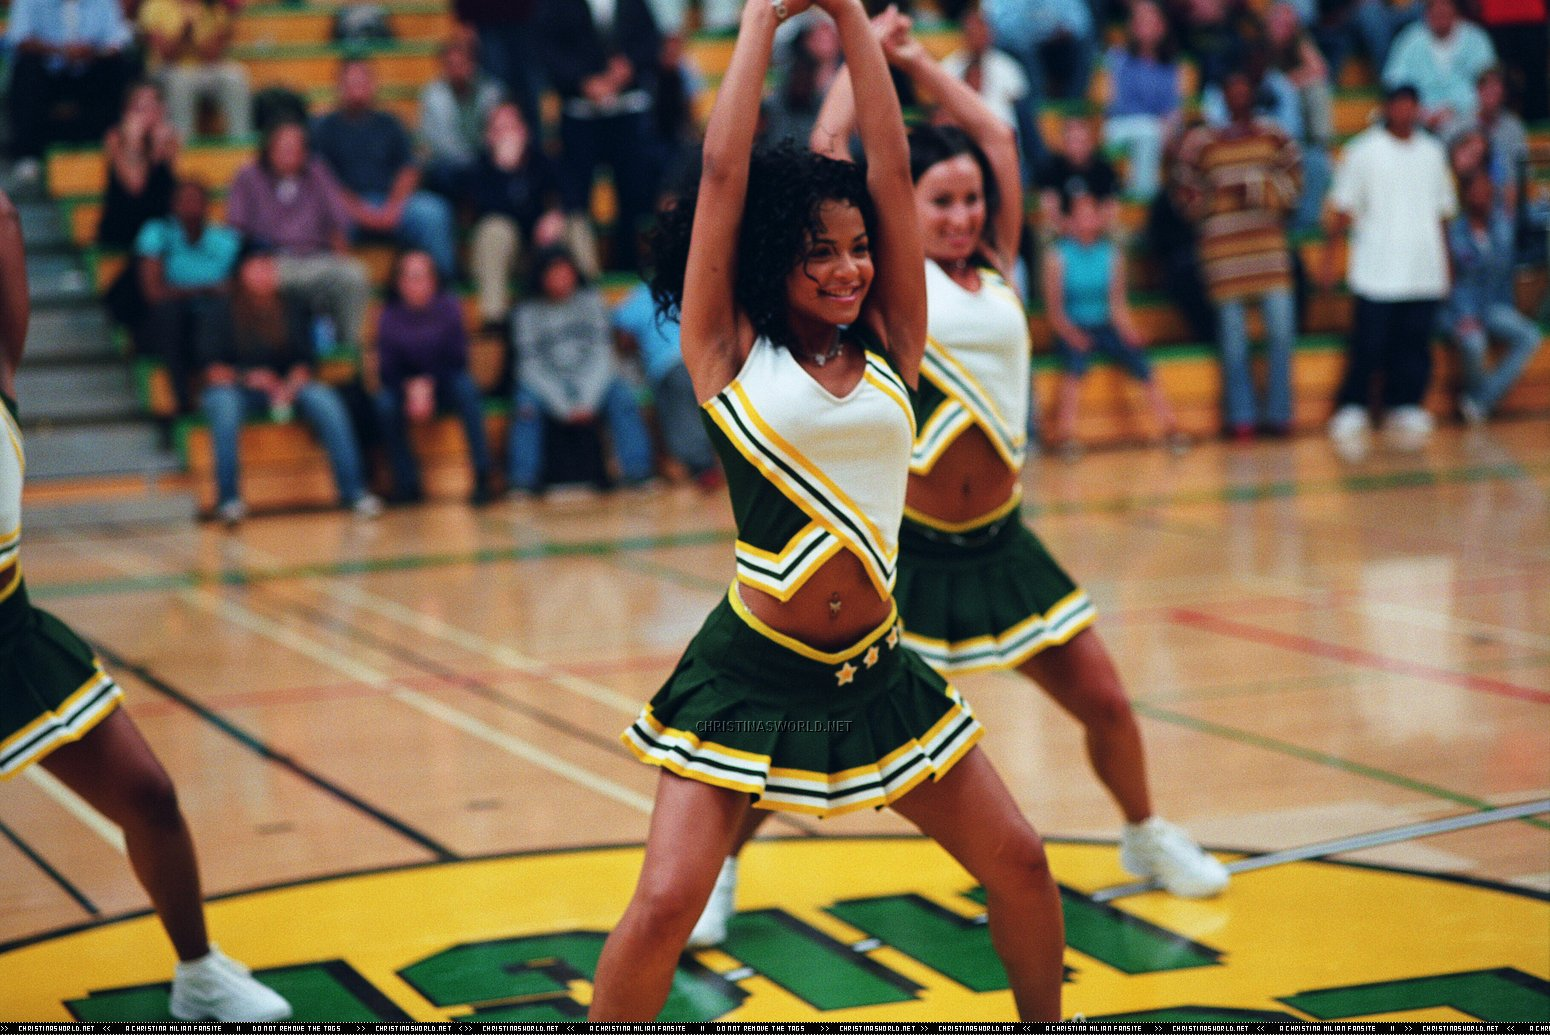 cheerleaders in movies and tv shows april 2011